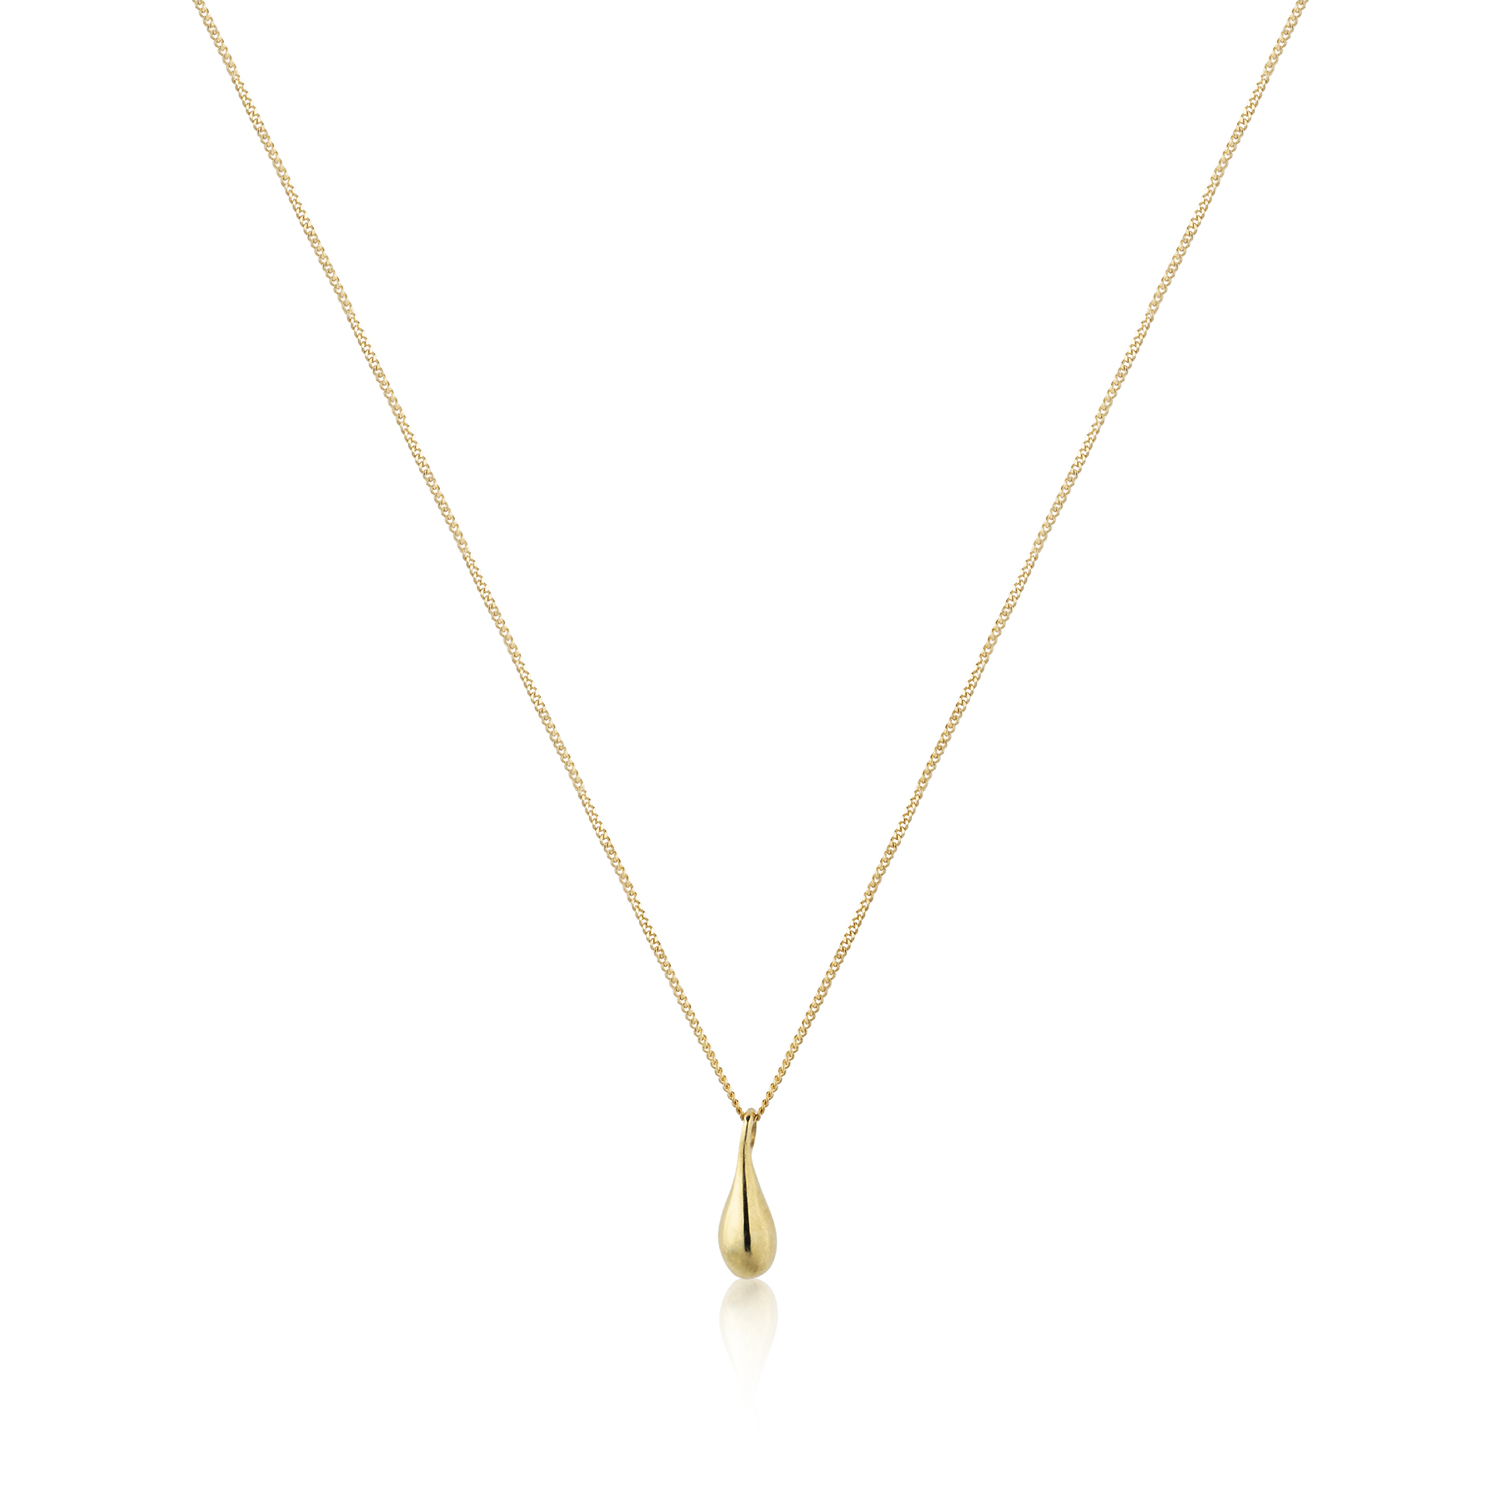 Olive oil drop pendant with chain in 18k gold